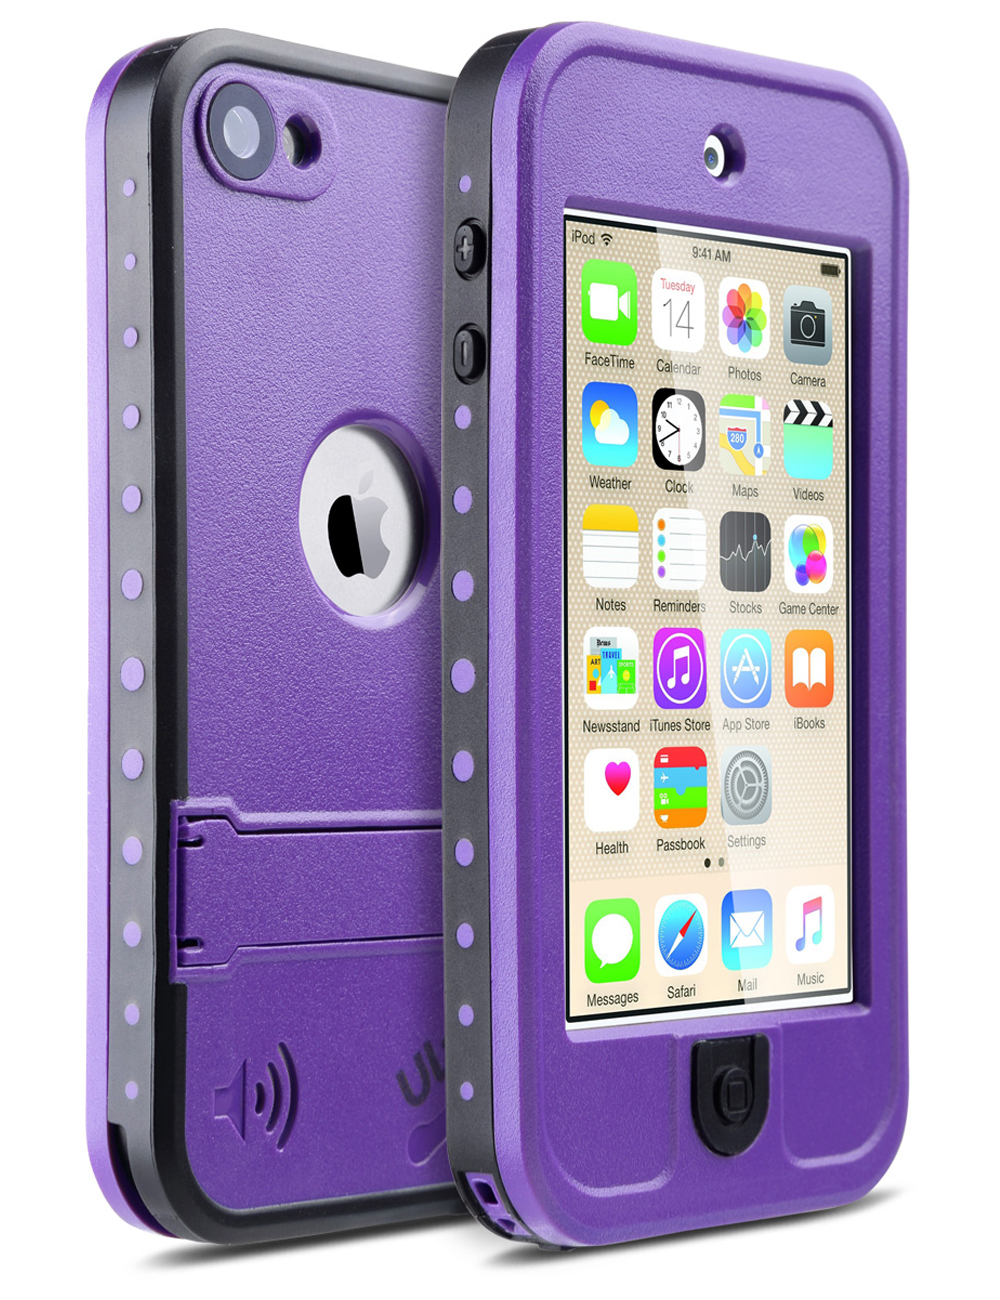 ULAK iPod Touch 5/6 Waterproof Case, Dustproof Sweatproof with Kickstand Built-in Touch Screen for Apple iPod Touch 5 / iPod Touch 6 6th Gen